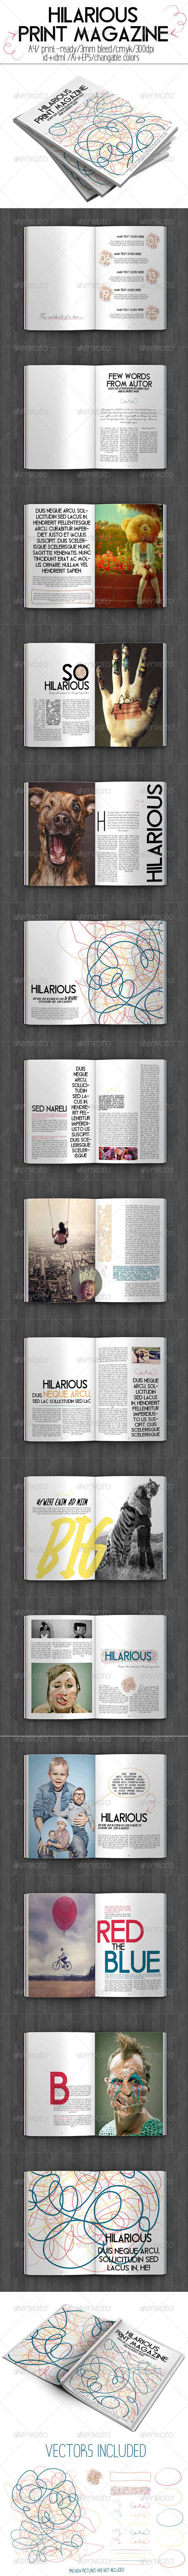 GraphicRiver Hilarious Print Magazine 8365168